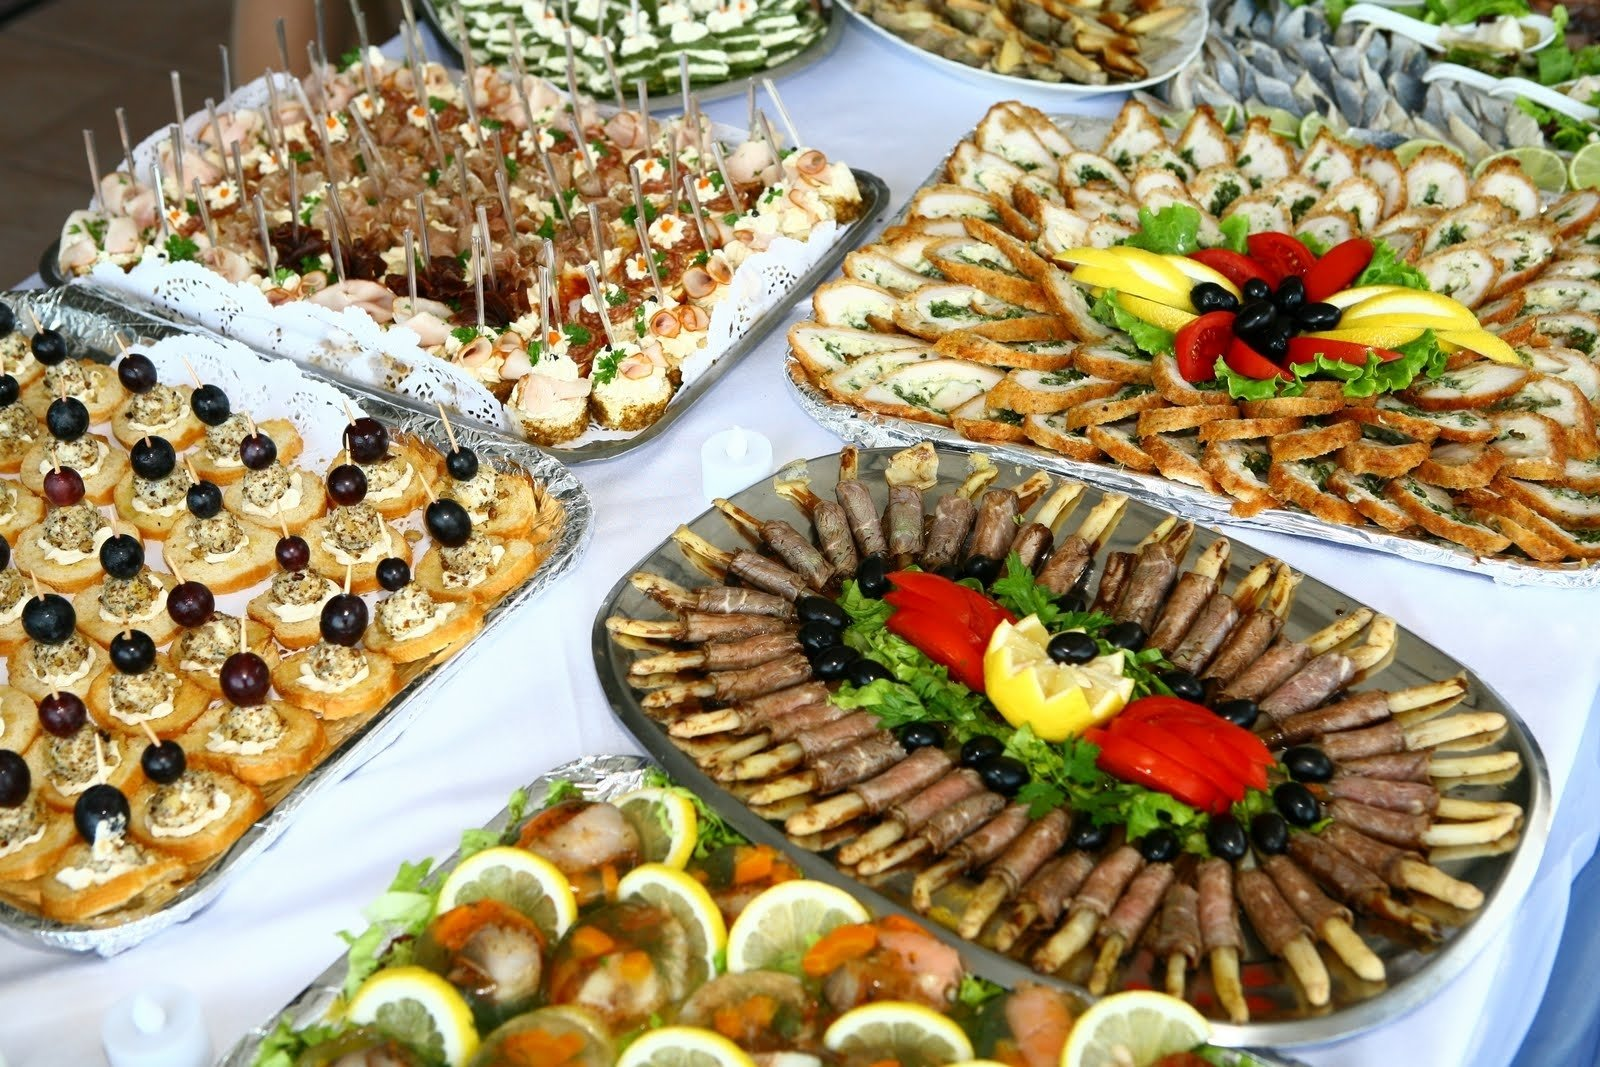 10 Famous Food Ideas For A Party holiday ideas party ideas arranging the foods